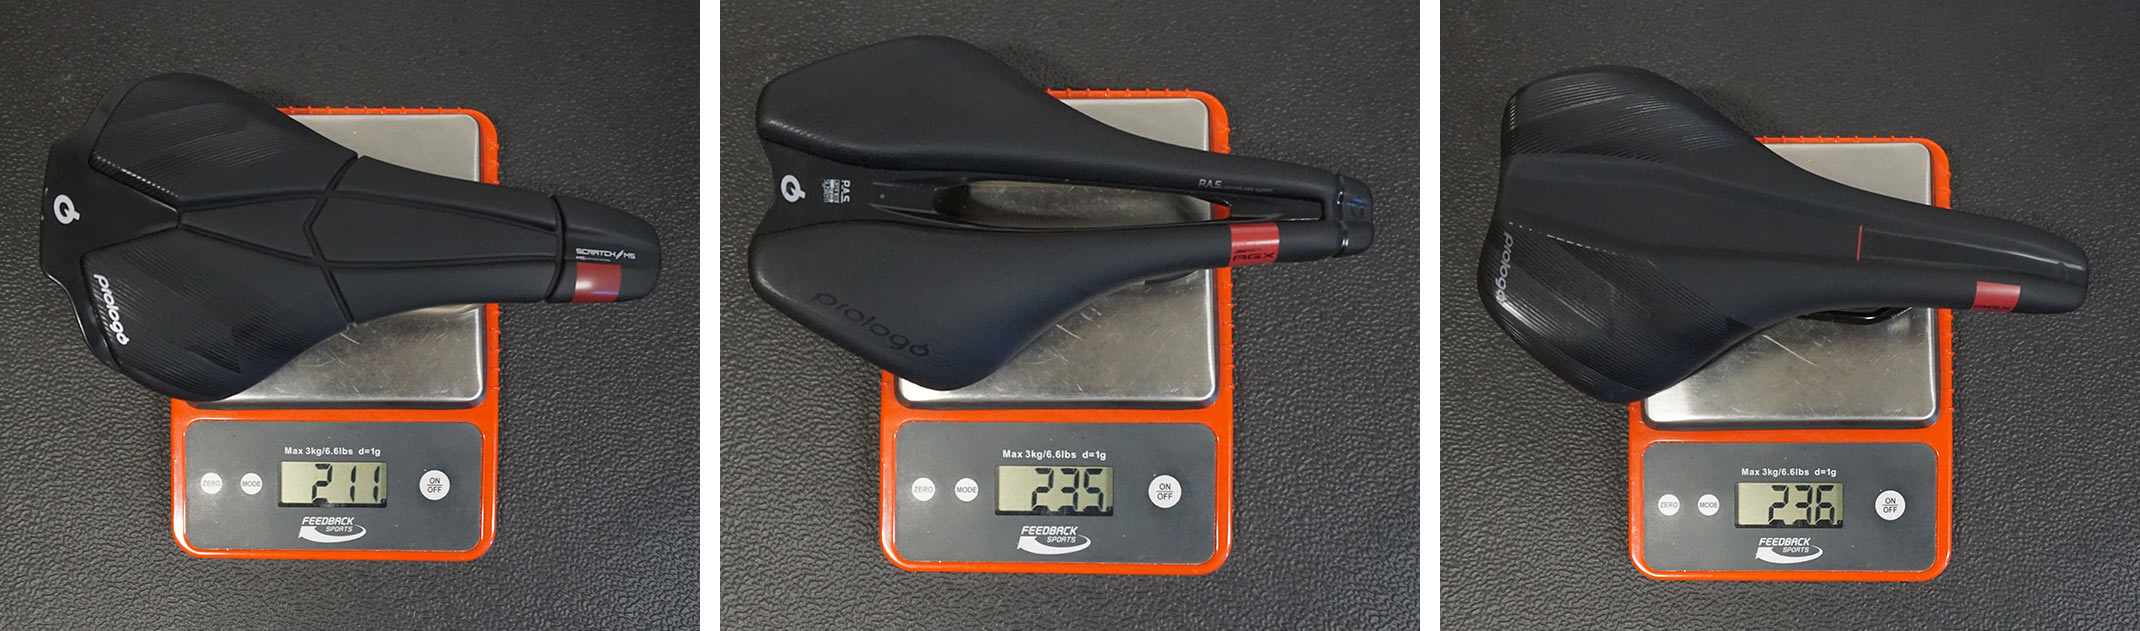 prologo agx saddles actual weights on a scale